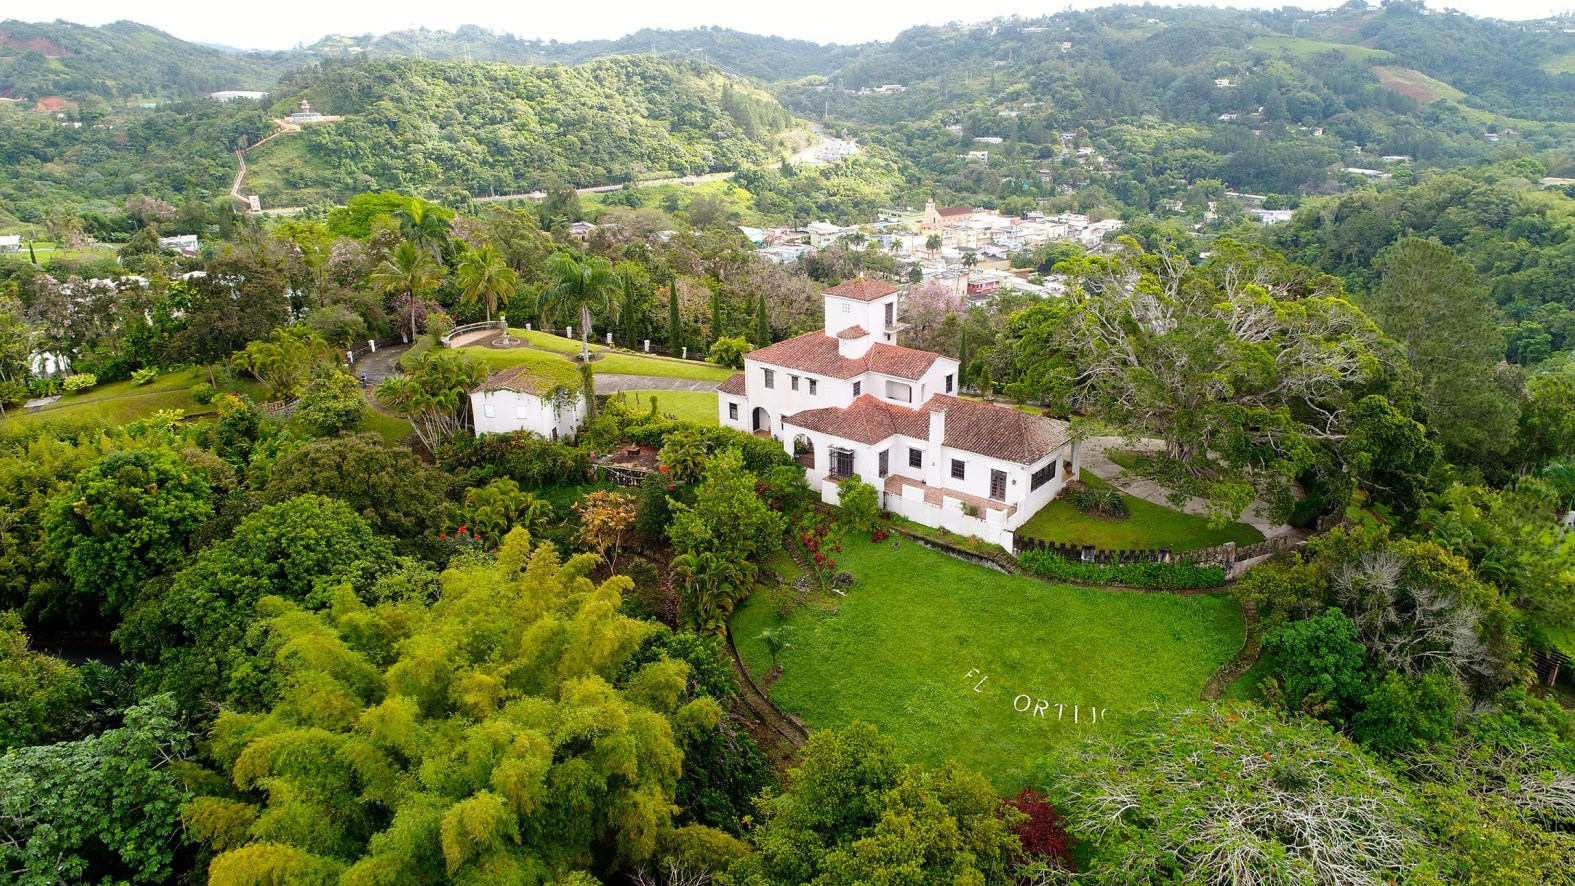 """El Cortijo"" surrounded by nature."